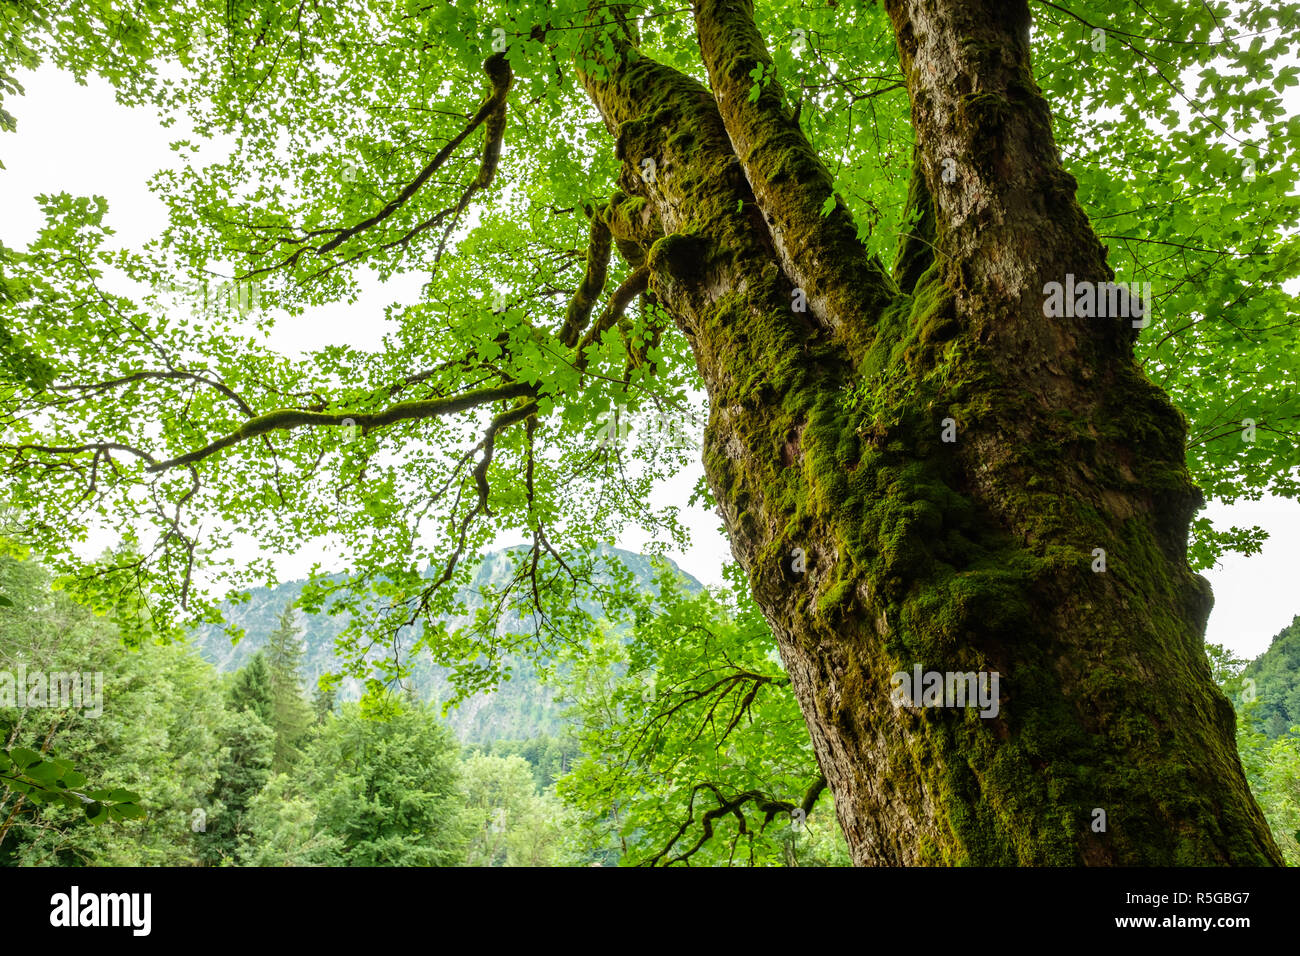 old tree with moss and knotty branches - Stock Image